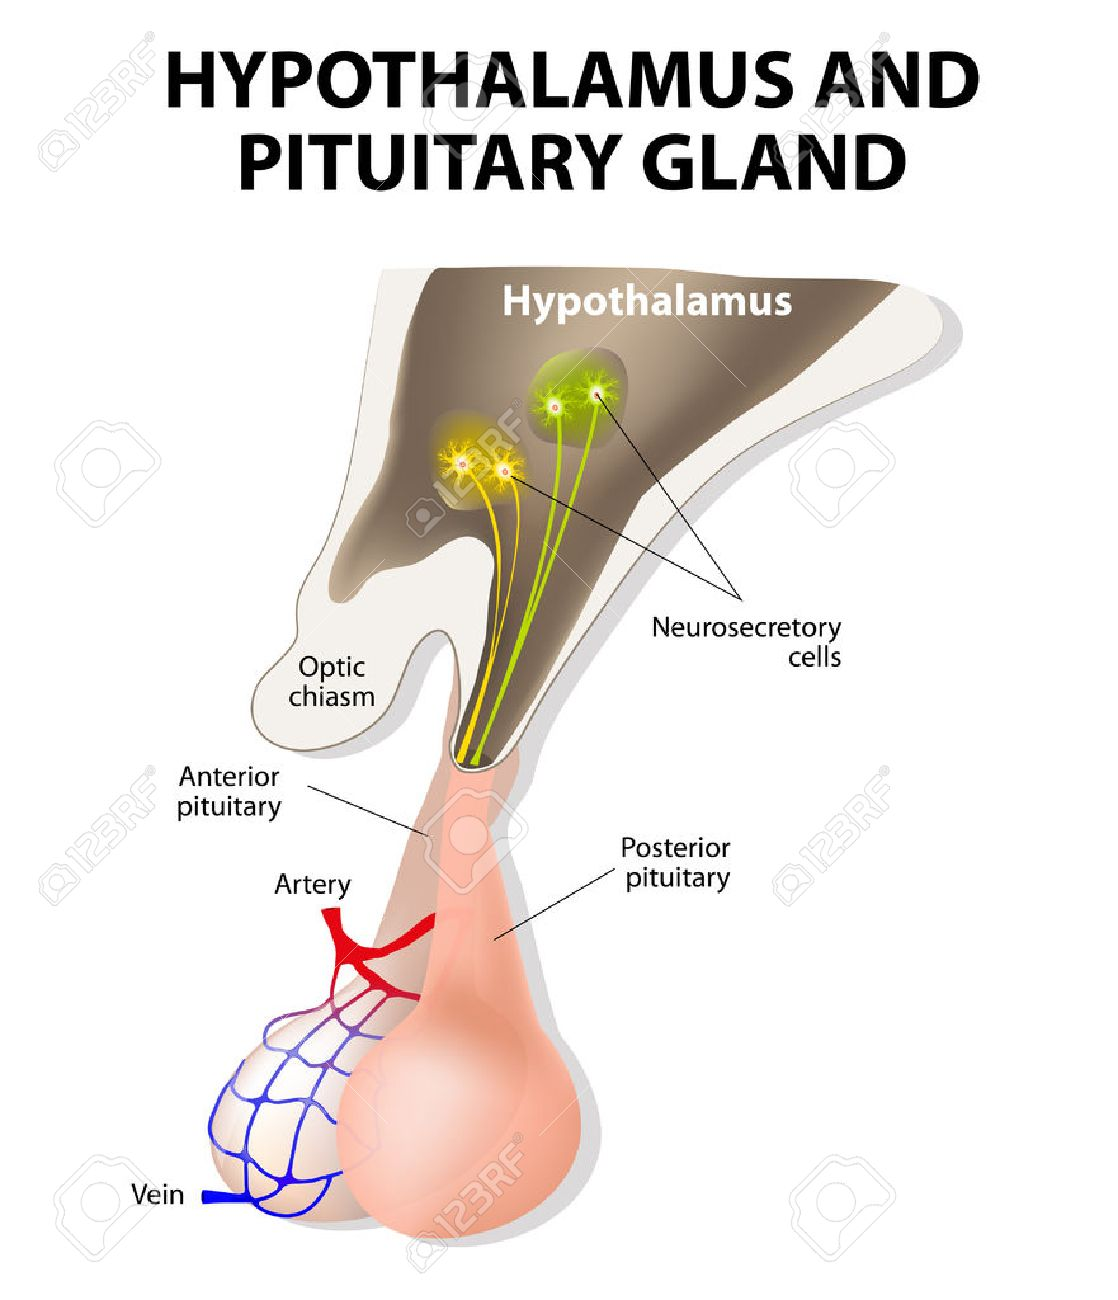 Pituitary Gland Is Connected To The Hypothalamus Via A Stalk